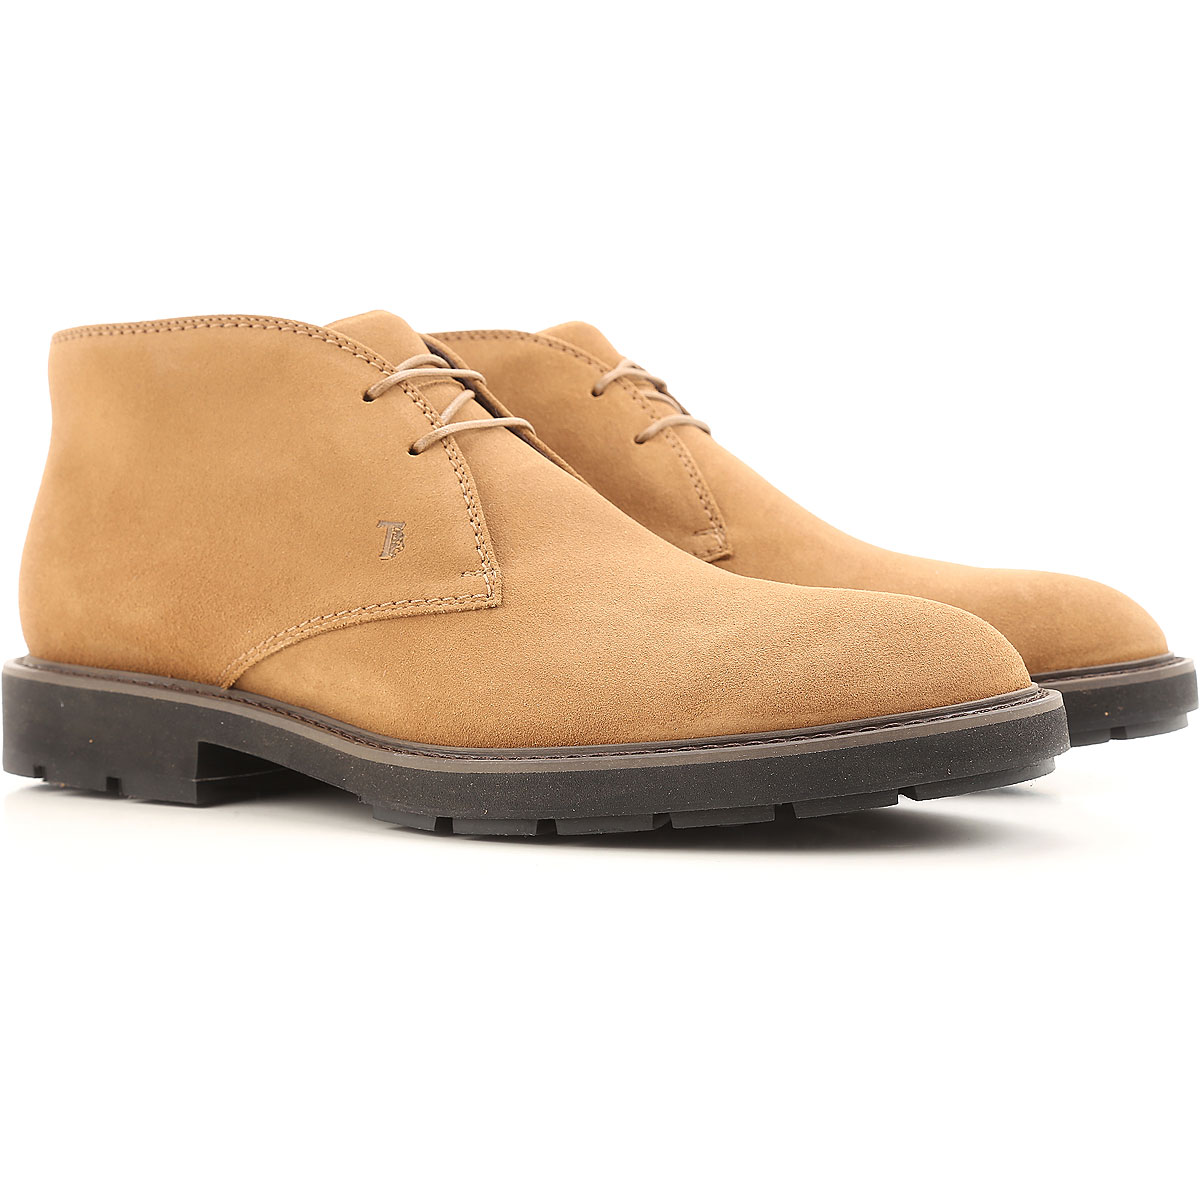 Tods Desert Boots Chukka for Men On Sale Biscuit SE - GOOFASH